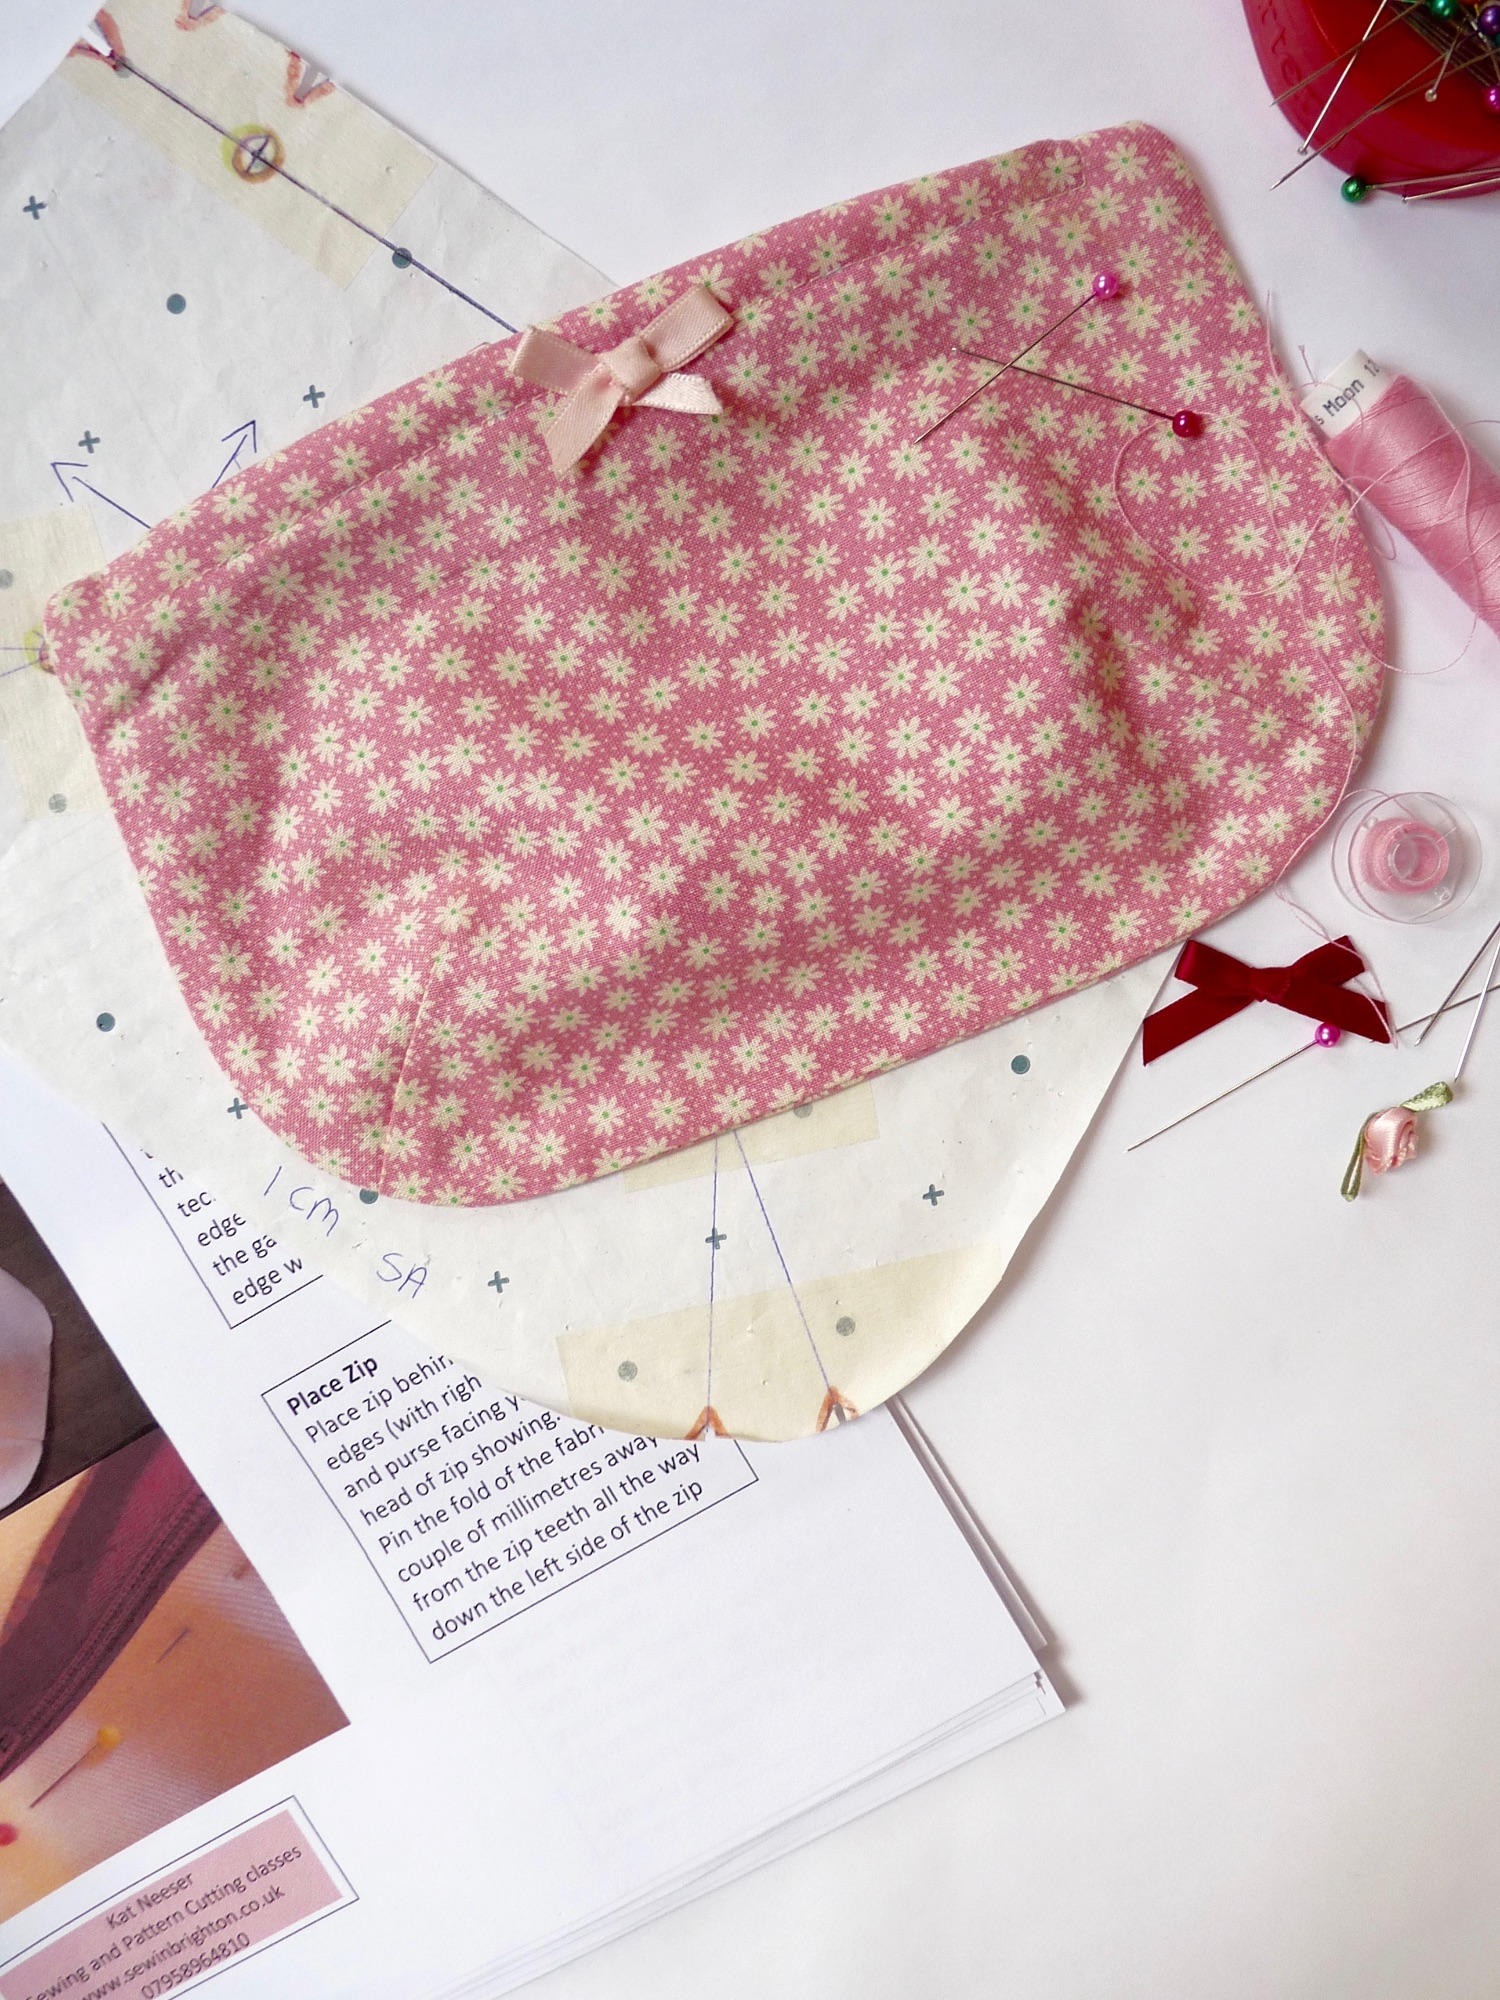 Zip Darted Purse - Beginner Sewing Project at Sew In Brighton